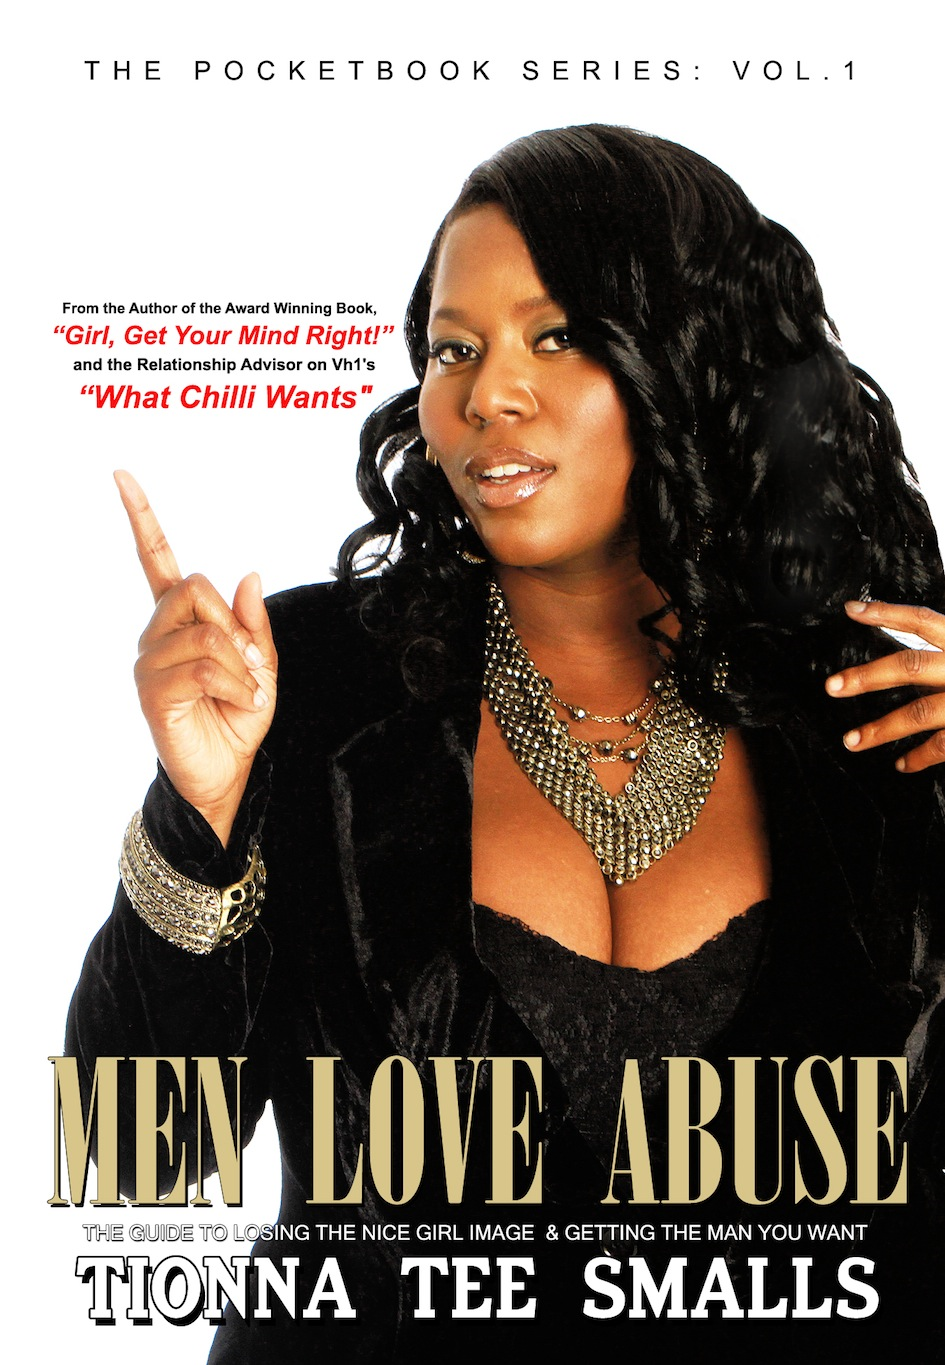 Men Love Abuse: The Guide to Losing the Nice Girl Image & Getting the Man You Want! By: Tionna Tee Smalls